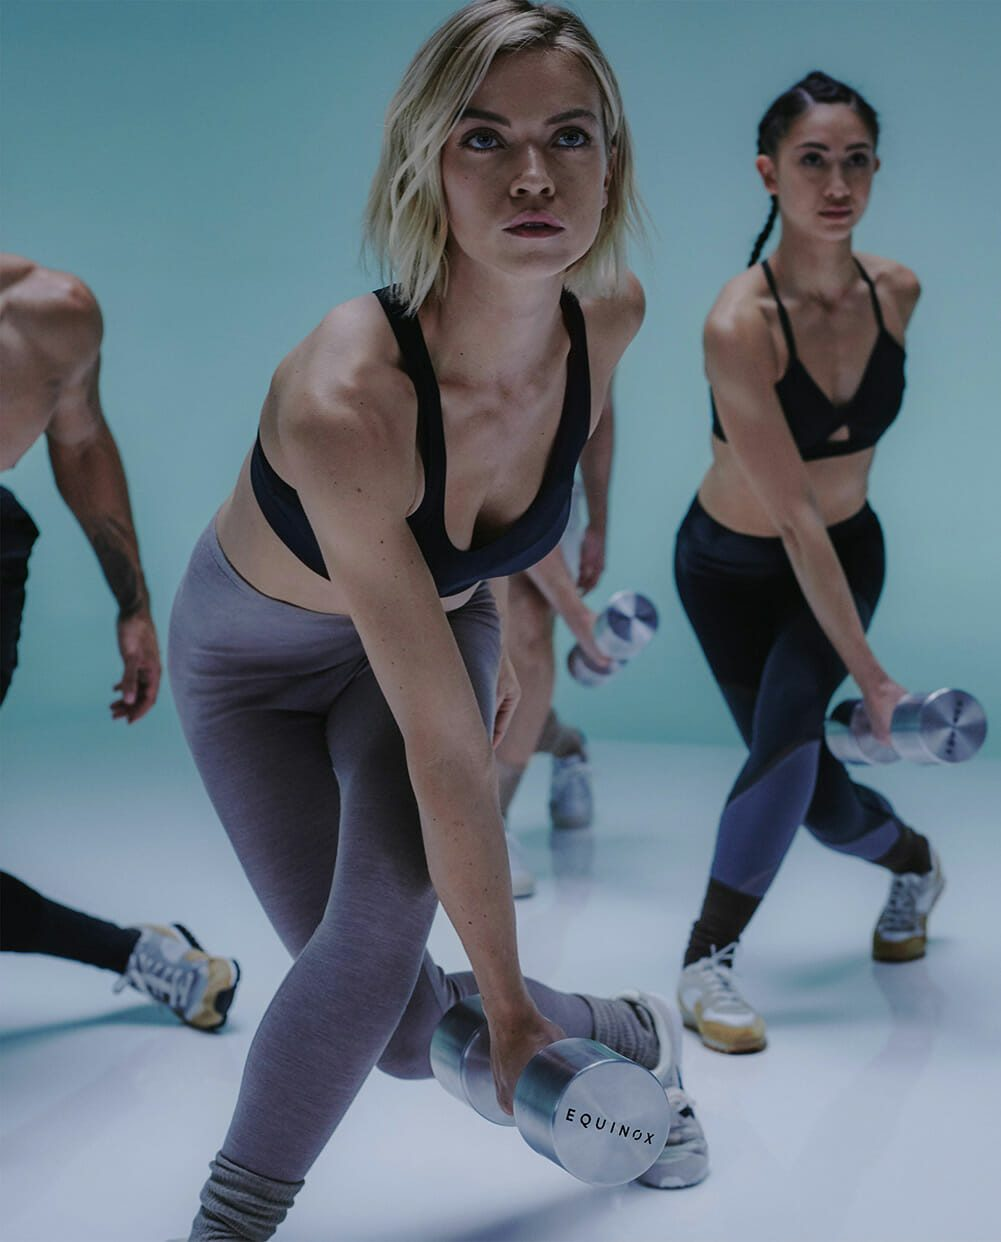 <group fitness